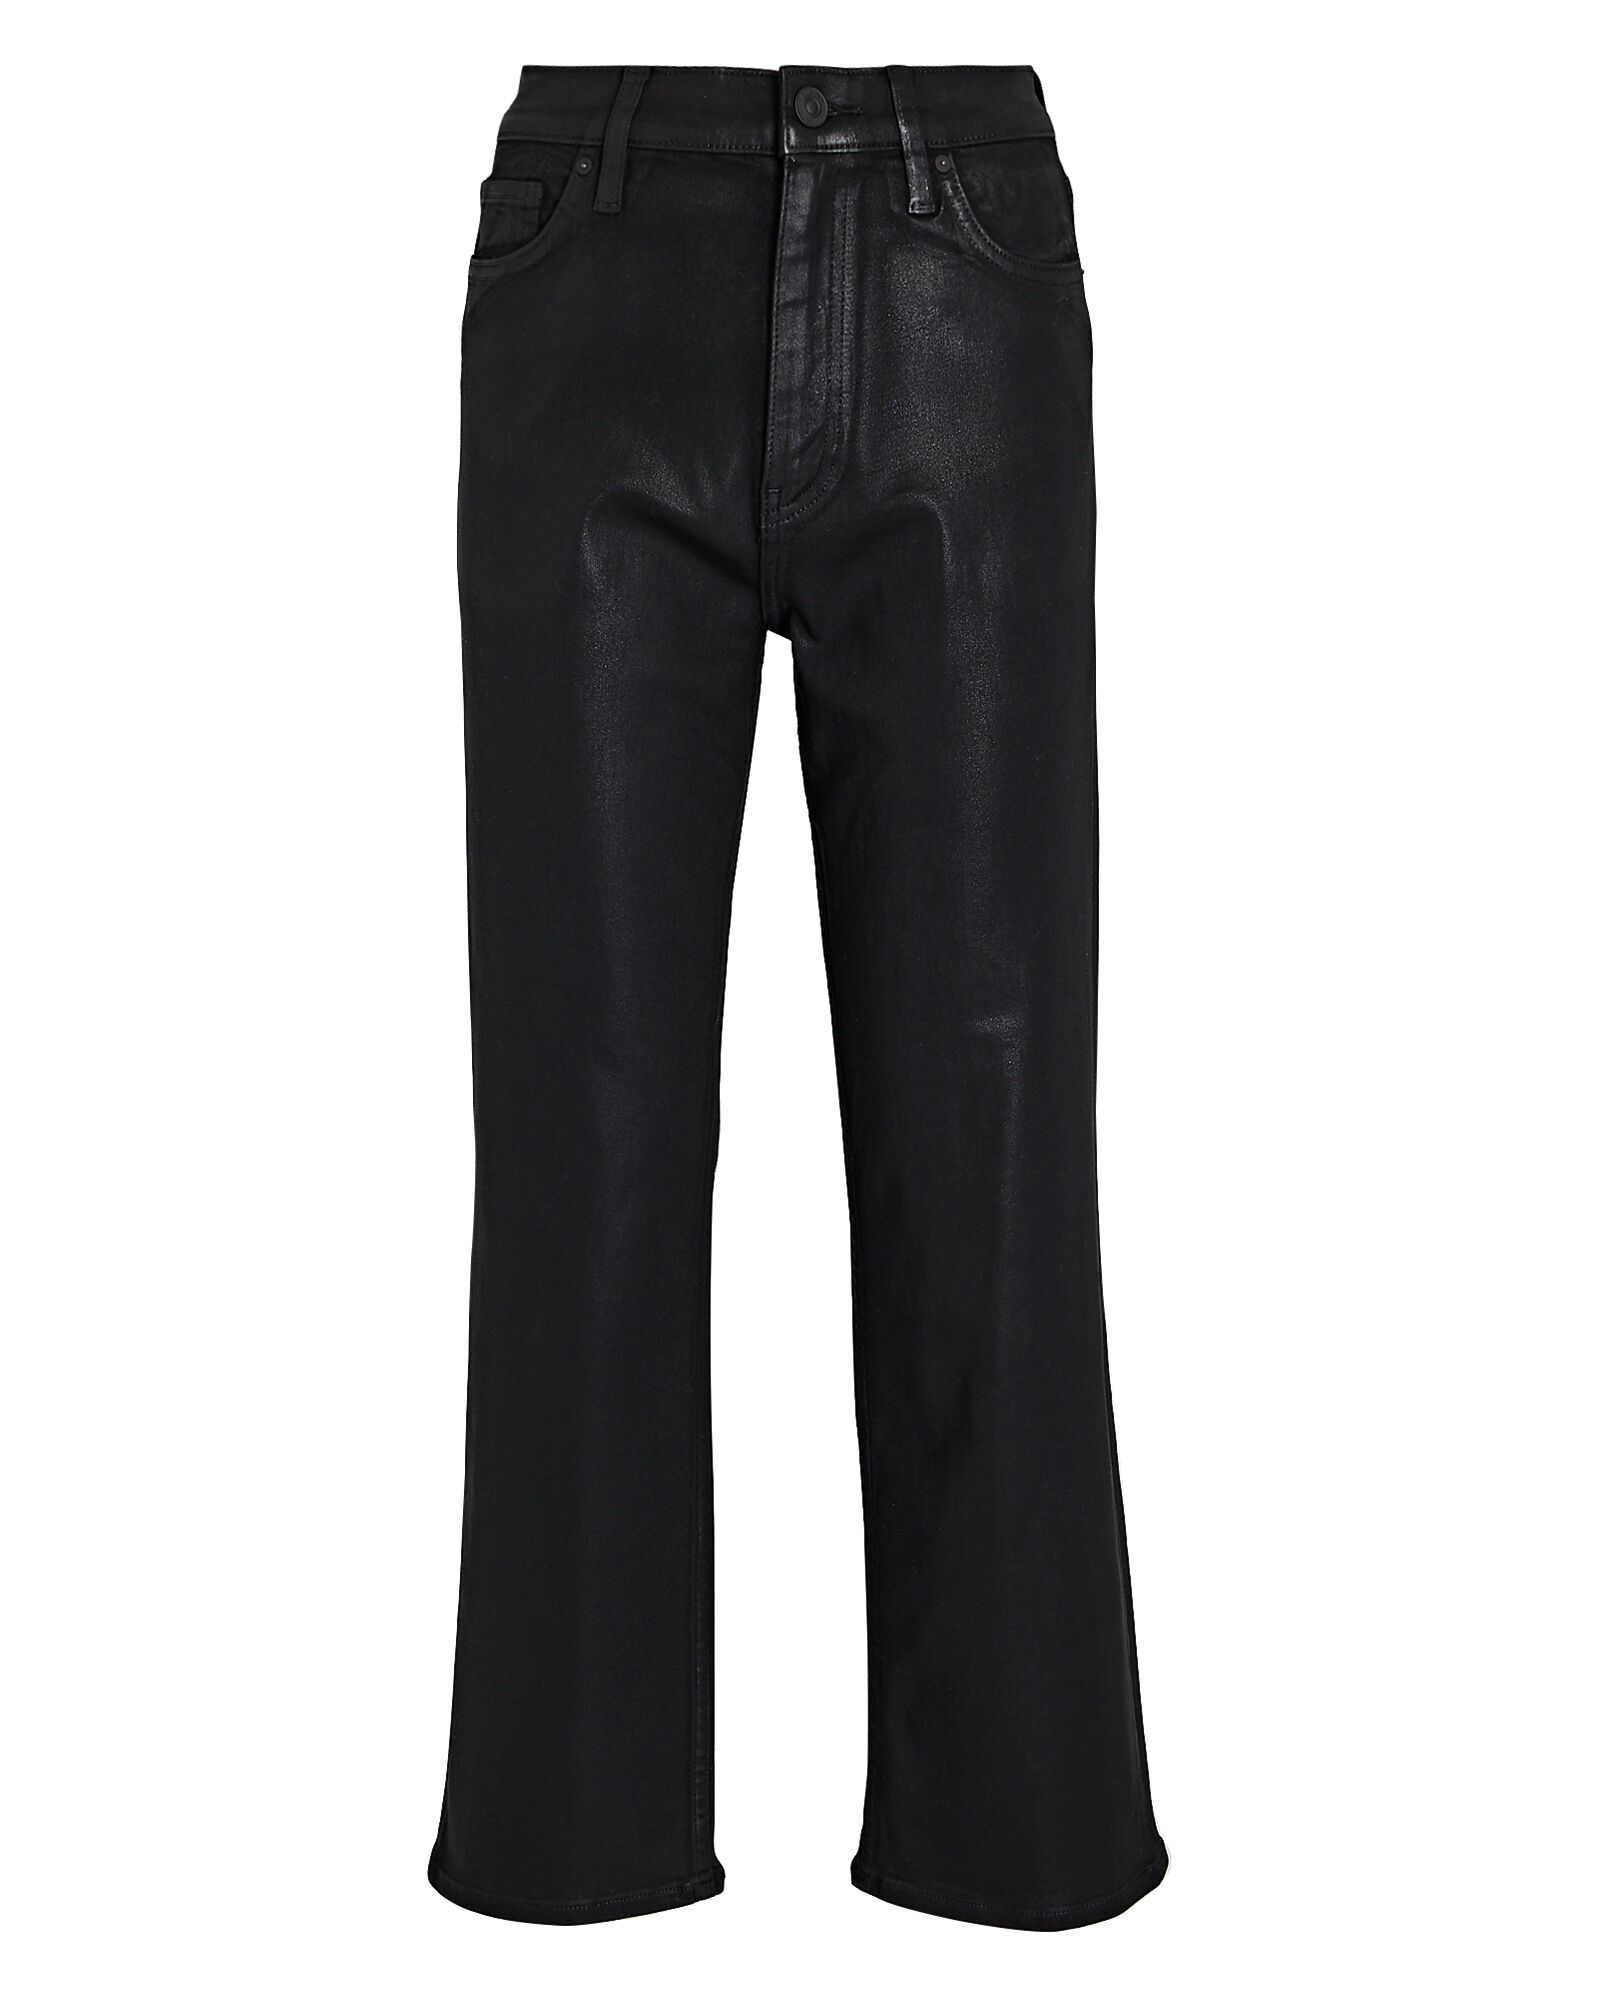 Remi Coated Straight-Leg Crop Jeans, BLACK, hi-res